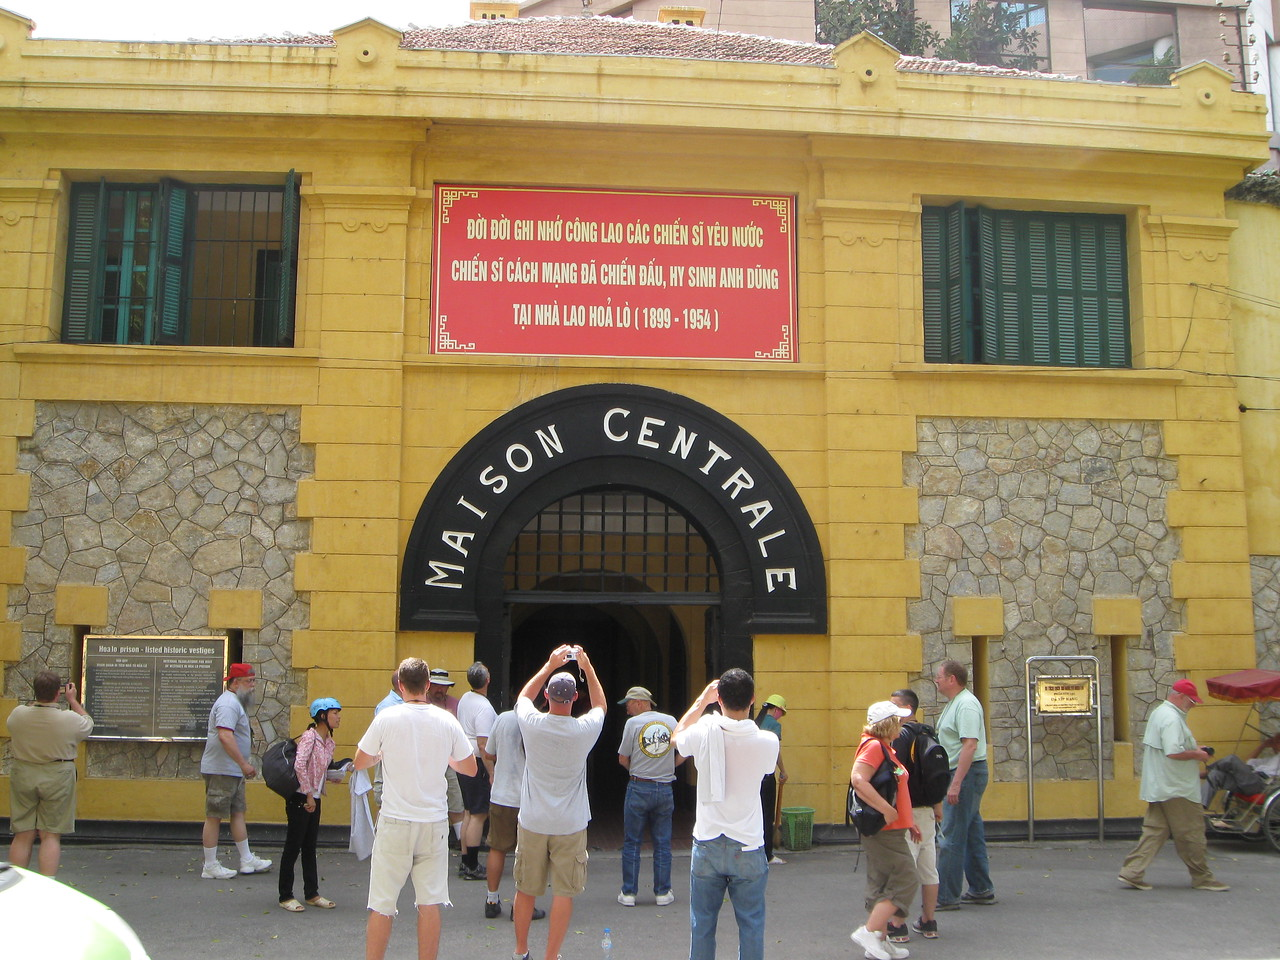 Outside of the Hoa Lo Prison (Hanoi Hilton).  It is now a museum.